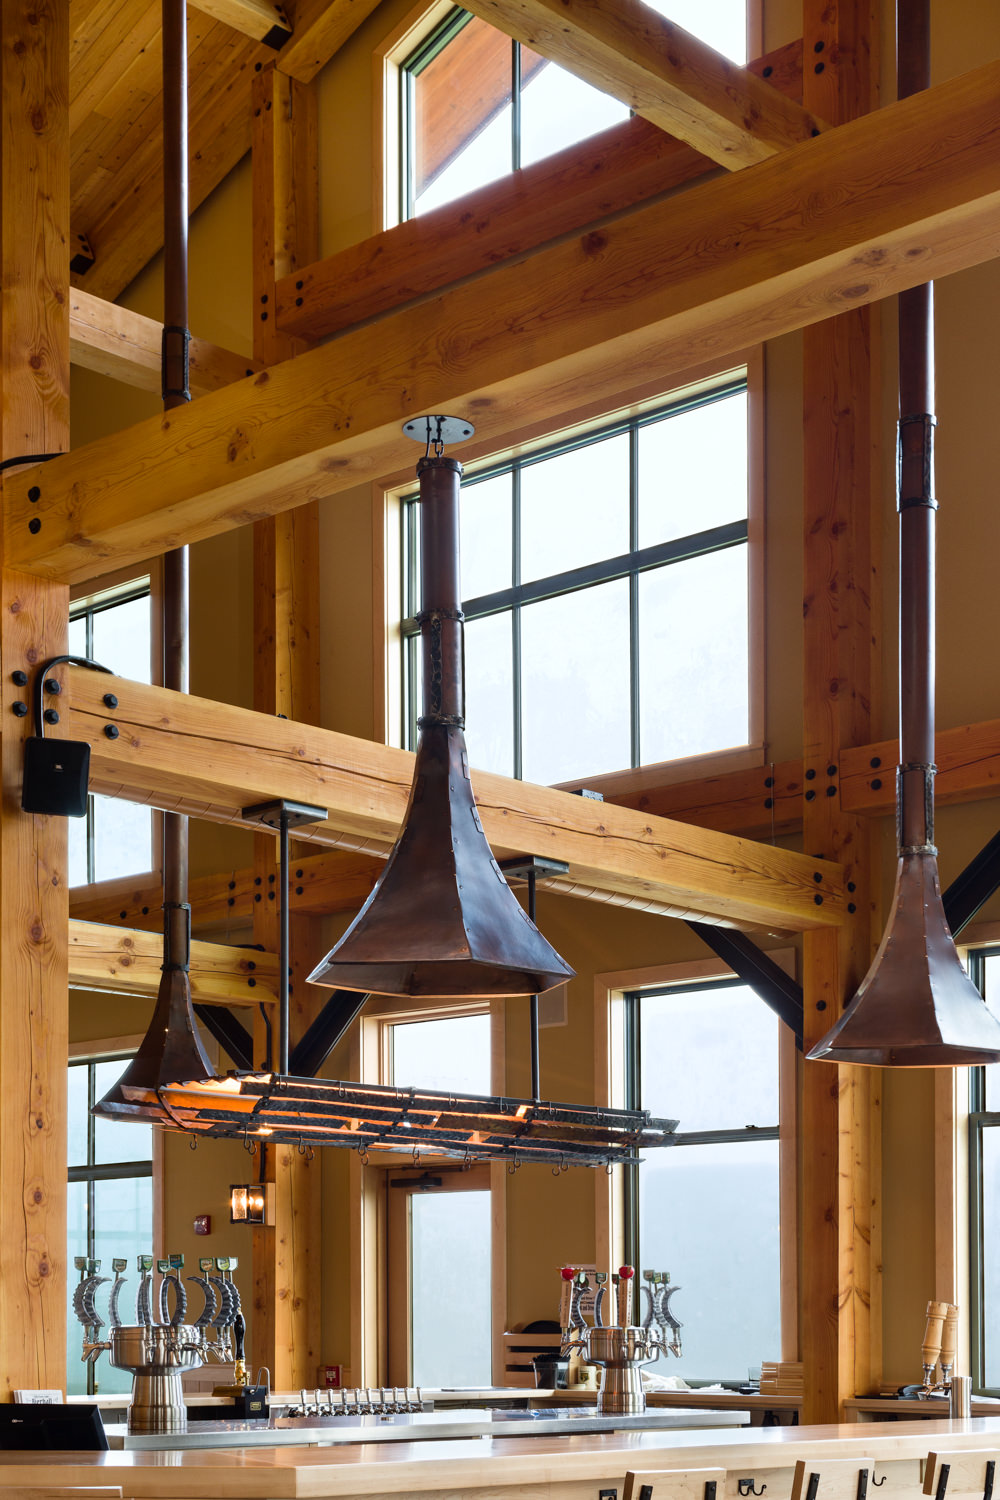 Interior photograph taken by Stina Booth of the Trapp Brewery Bierhall in Stowe Vermont designed by Guillot Vivian Viehmann Architects Inc. and constructed by Neagley & Chase Construction Co